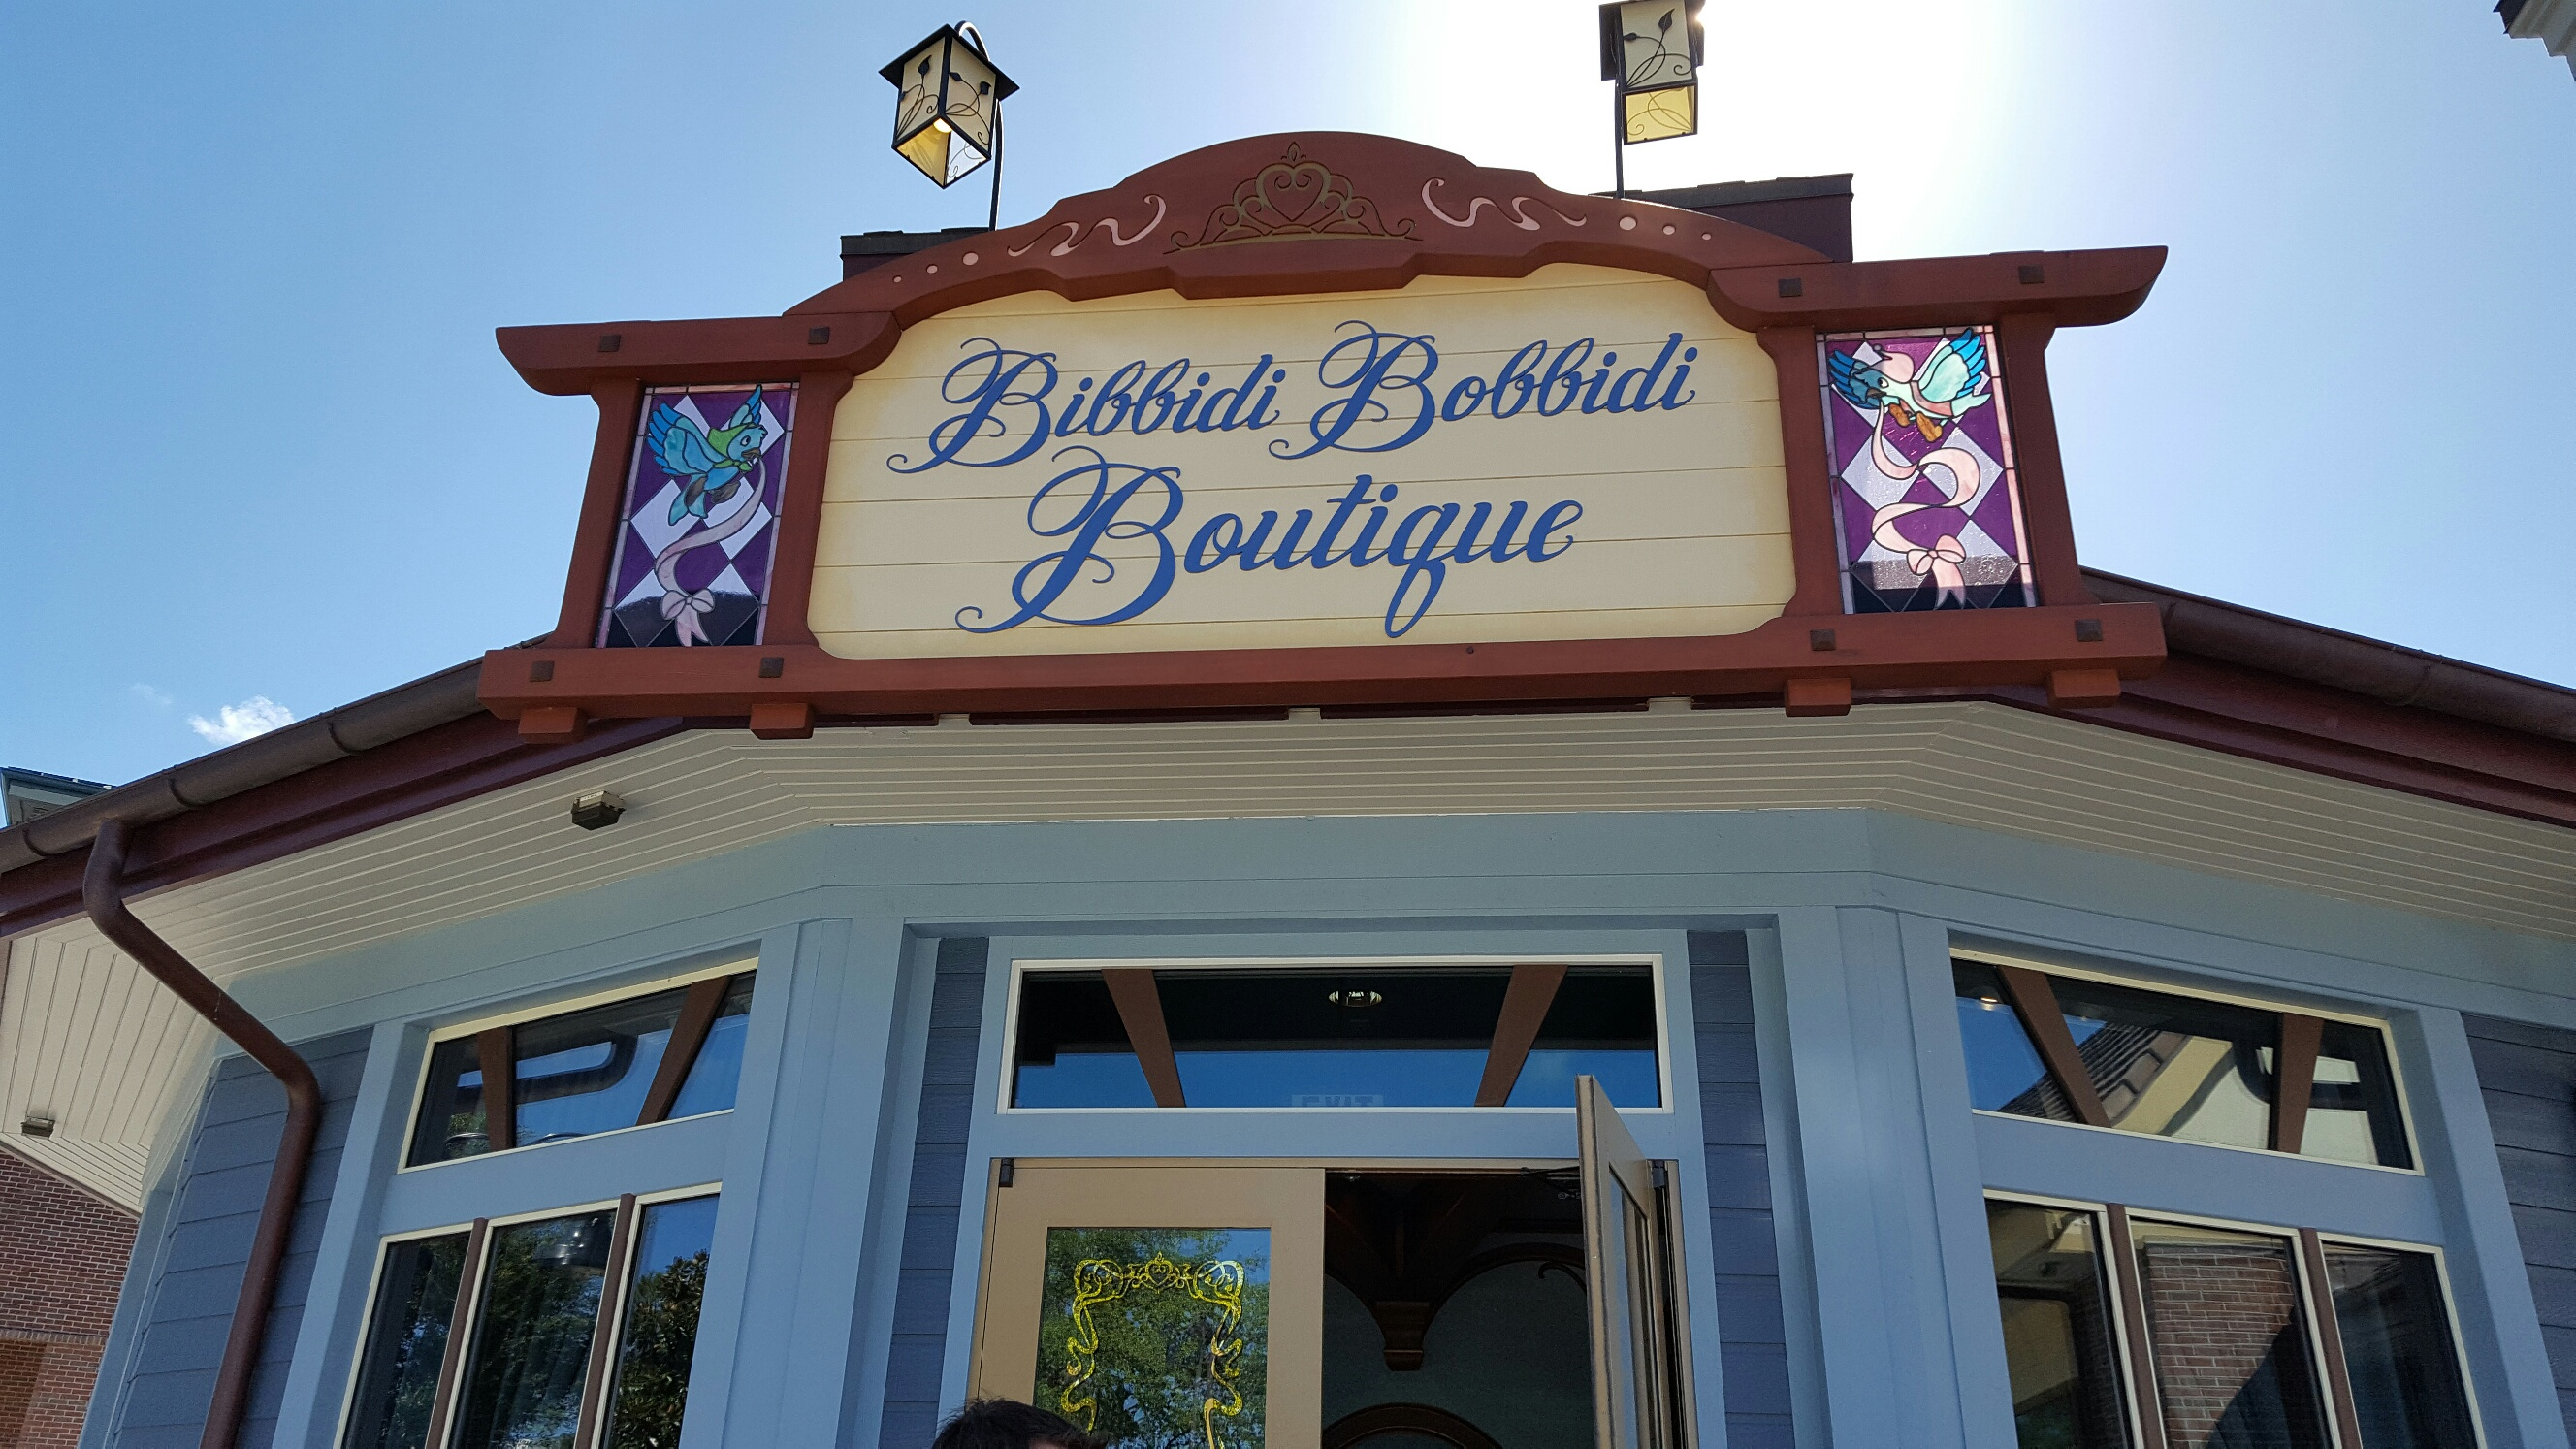 The Most Magical Boutique Gets A Makeover The New